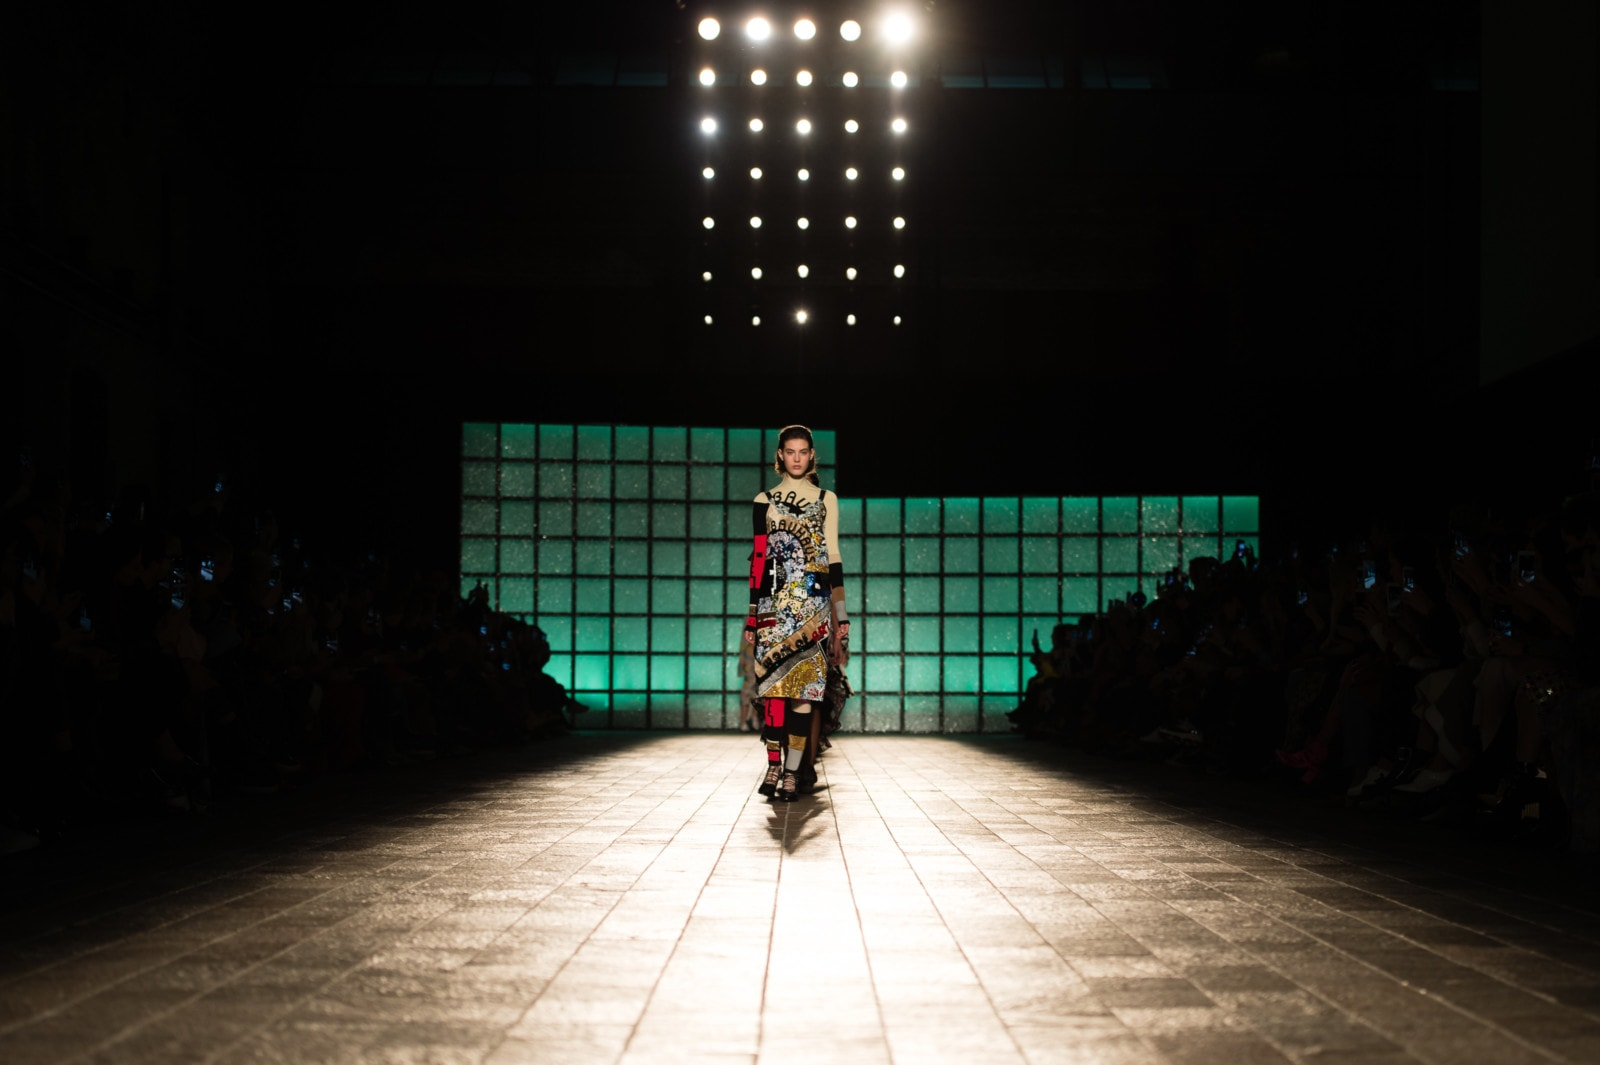 mary-katrantzou-2-london-fashion-week-freelance-photographer-richard-isaac-3200